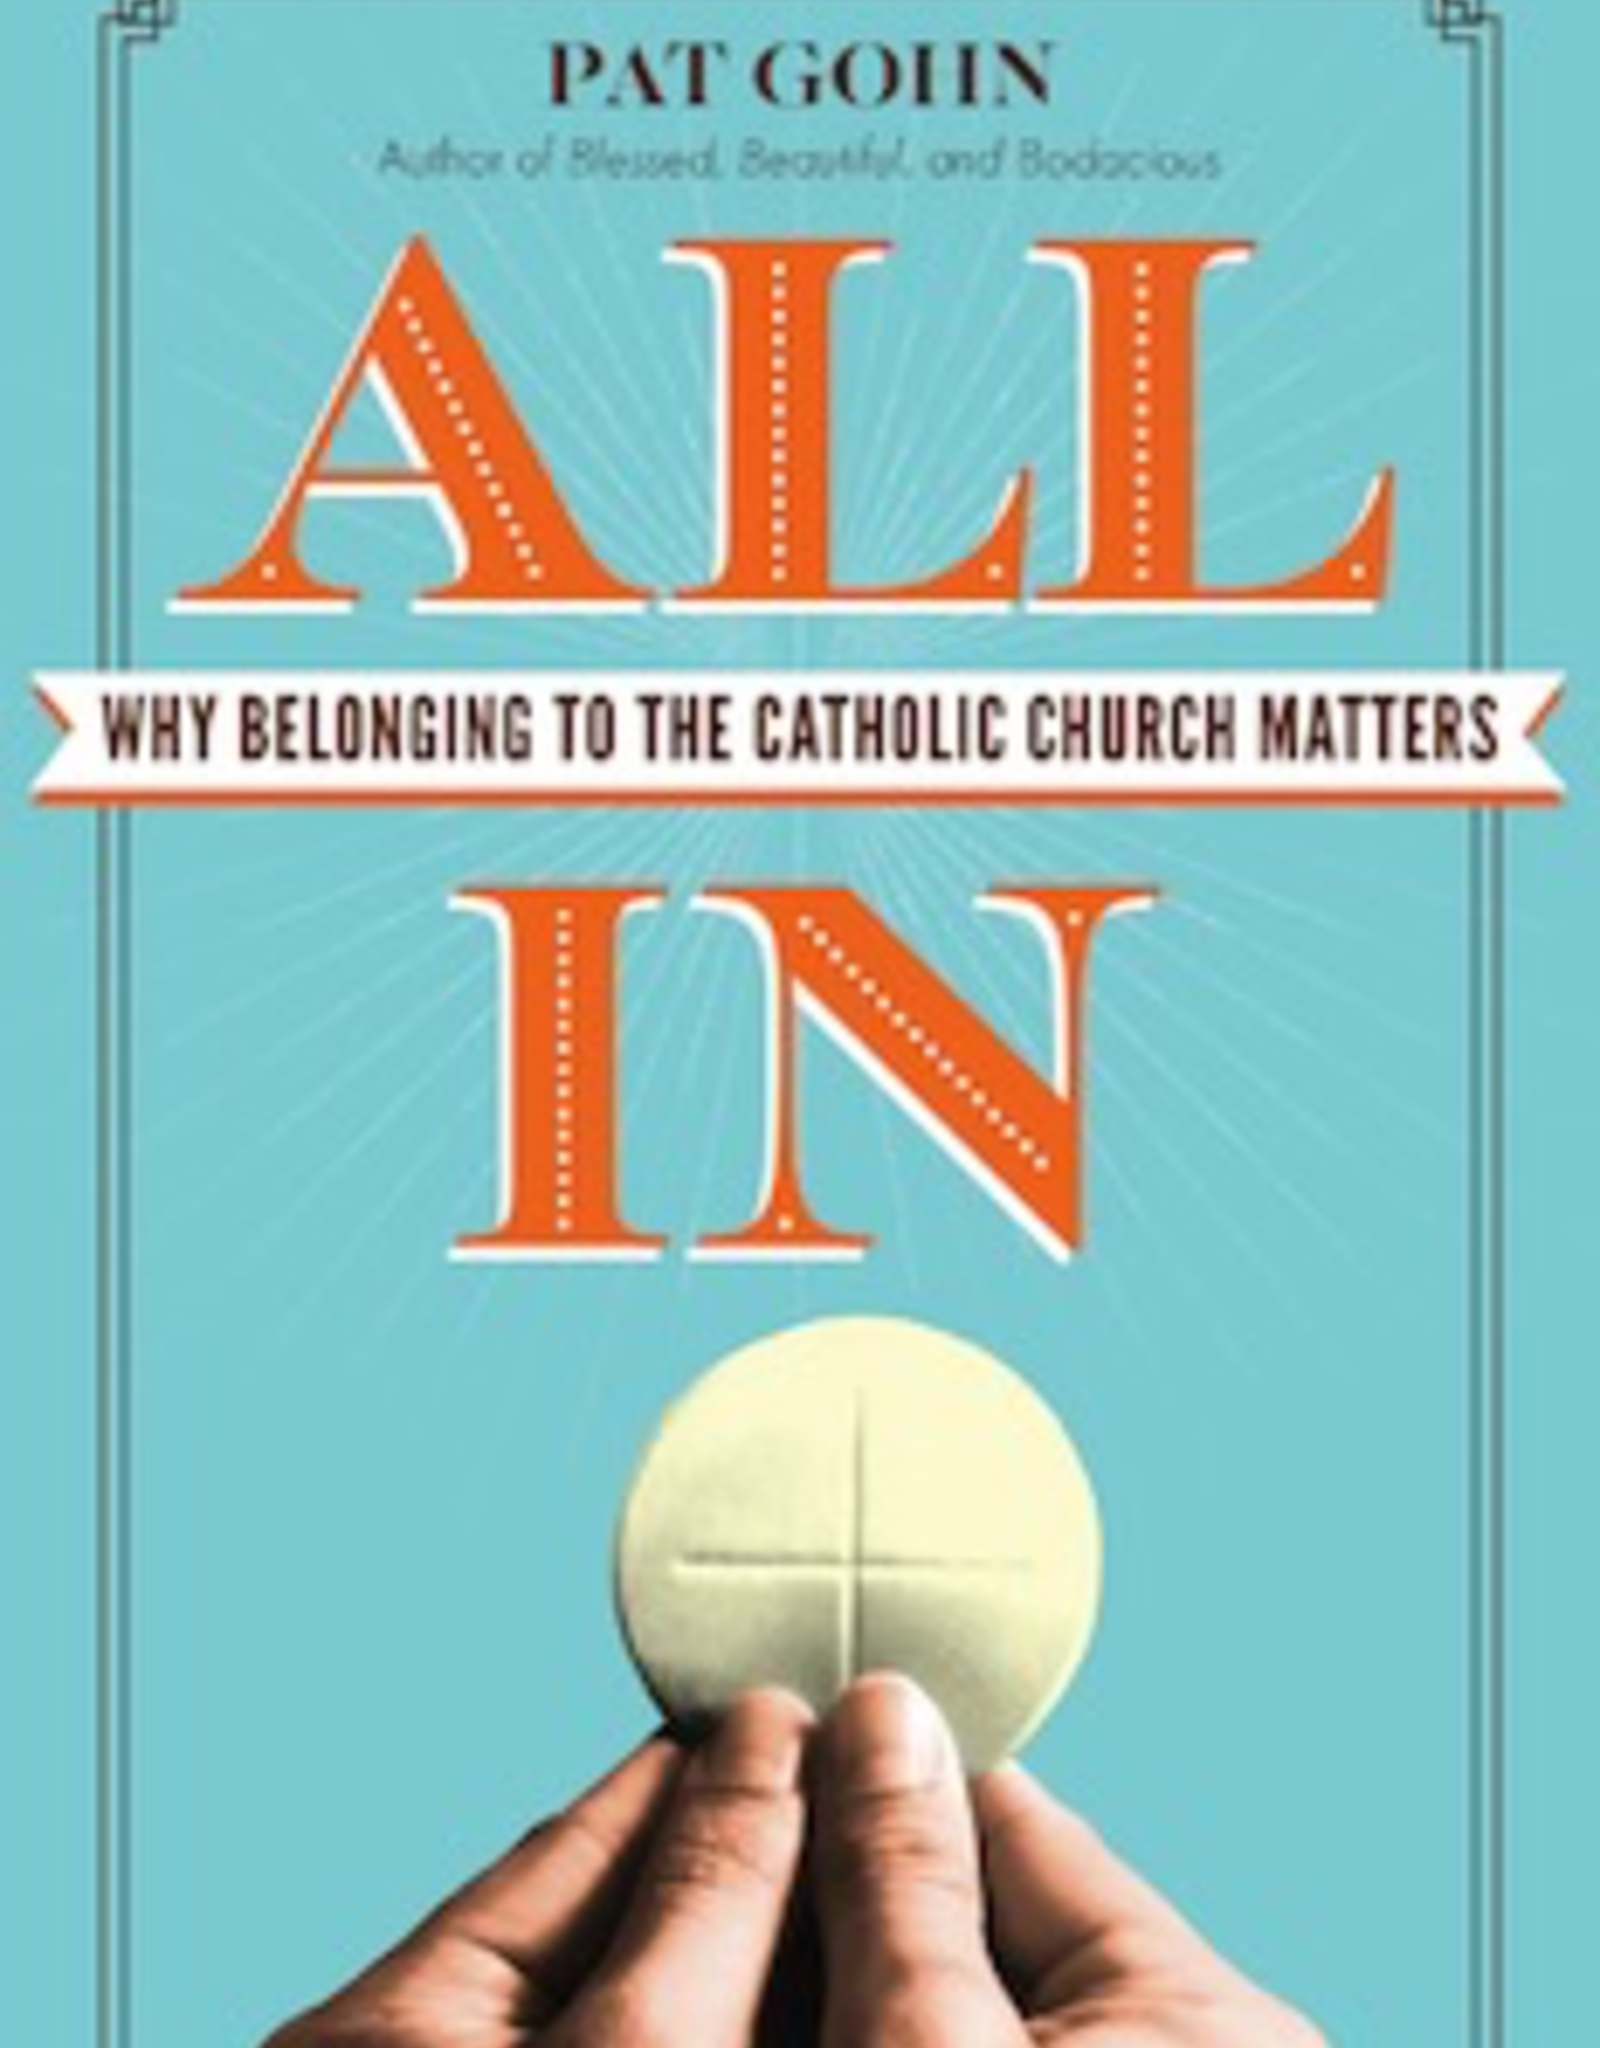 Ave Maria Press All In:  Why Belonging to the Catholic Church Matters, by Pat Gohn (paperback)